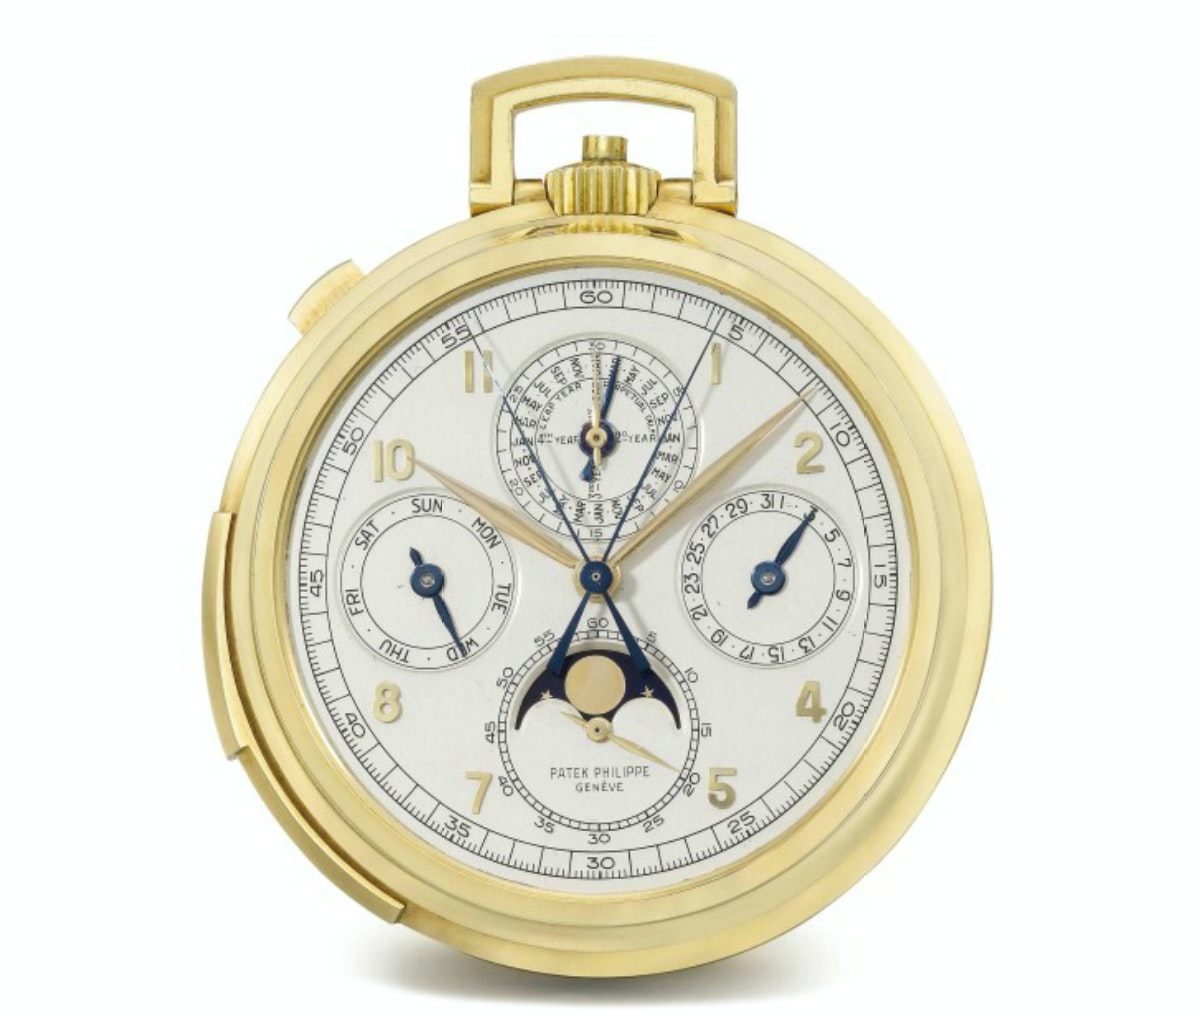 Found: The Dalai Lama's Patek Philippe, Gifted By FDR Via An OSS Officer Who Was The Grandson Of Leo Tolstoy (Seriously) Found: The Dalai Lama's Patek Philippe, Gifted By FDR Via An OSS Officer Who Was The Grandson Of Leo Tolstoy (Seriously) q